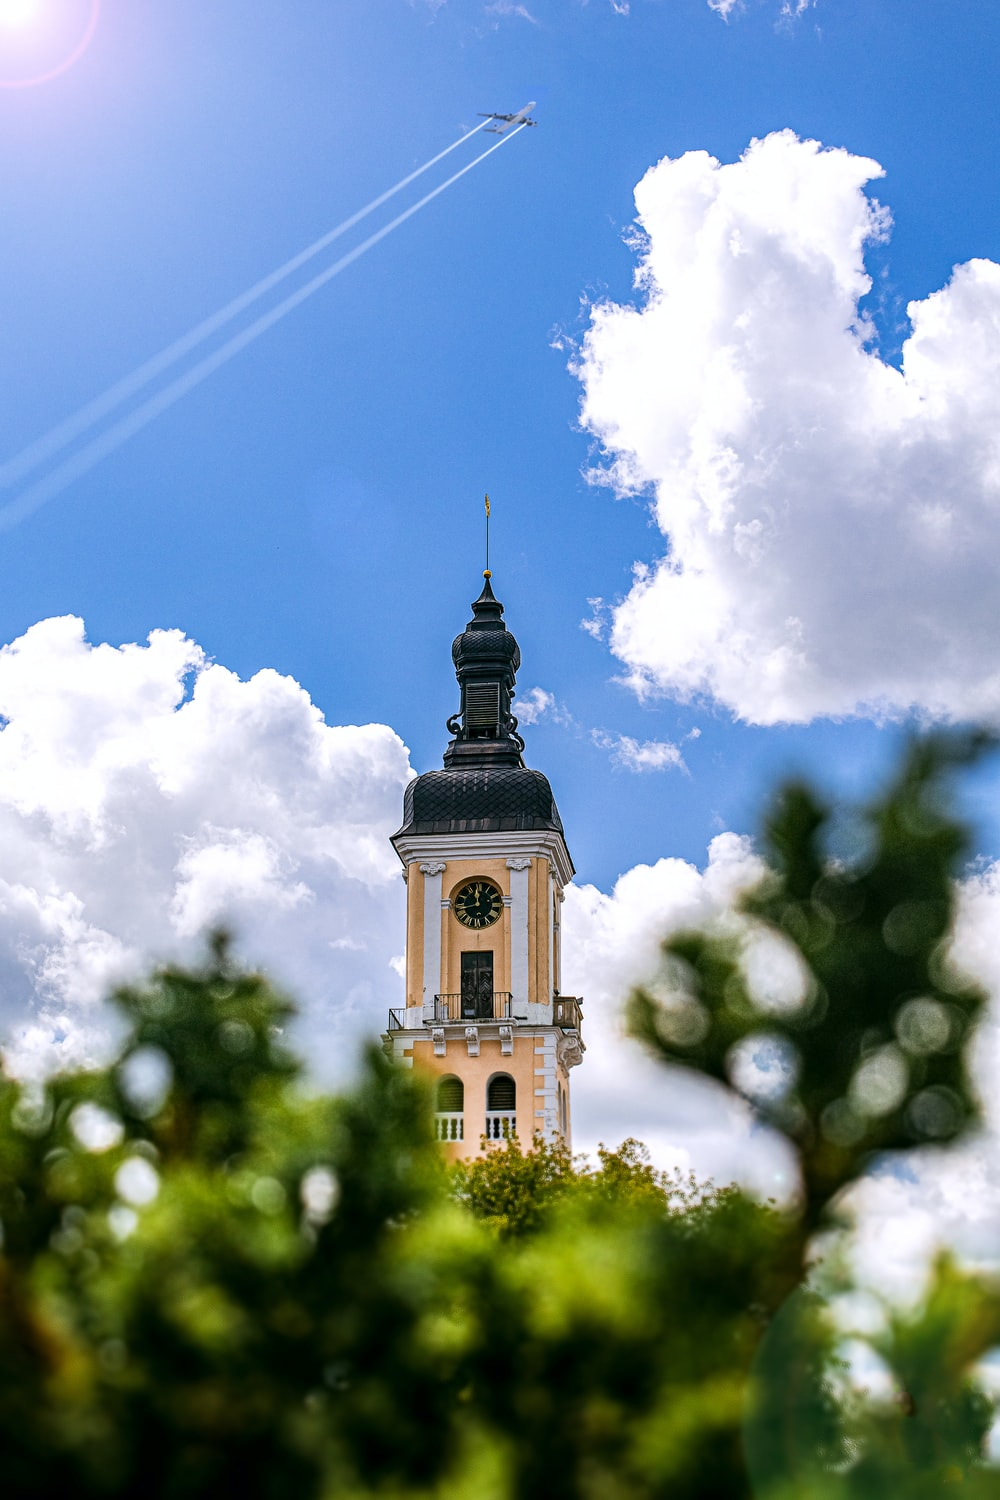 black and yellow church tower under a cloudy sky